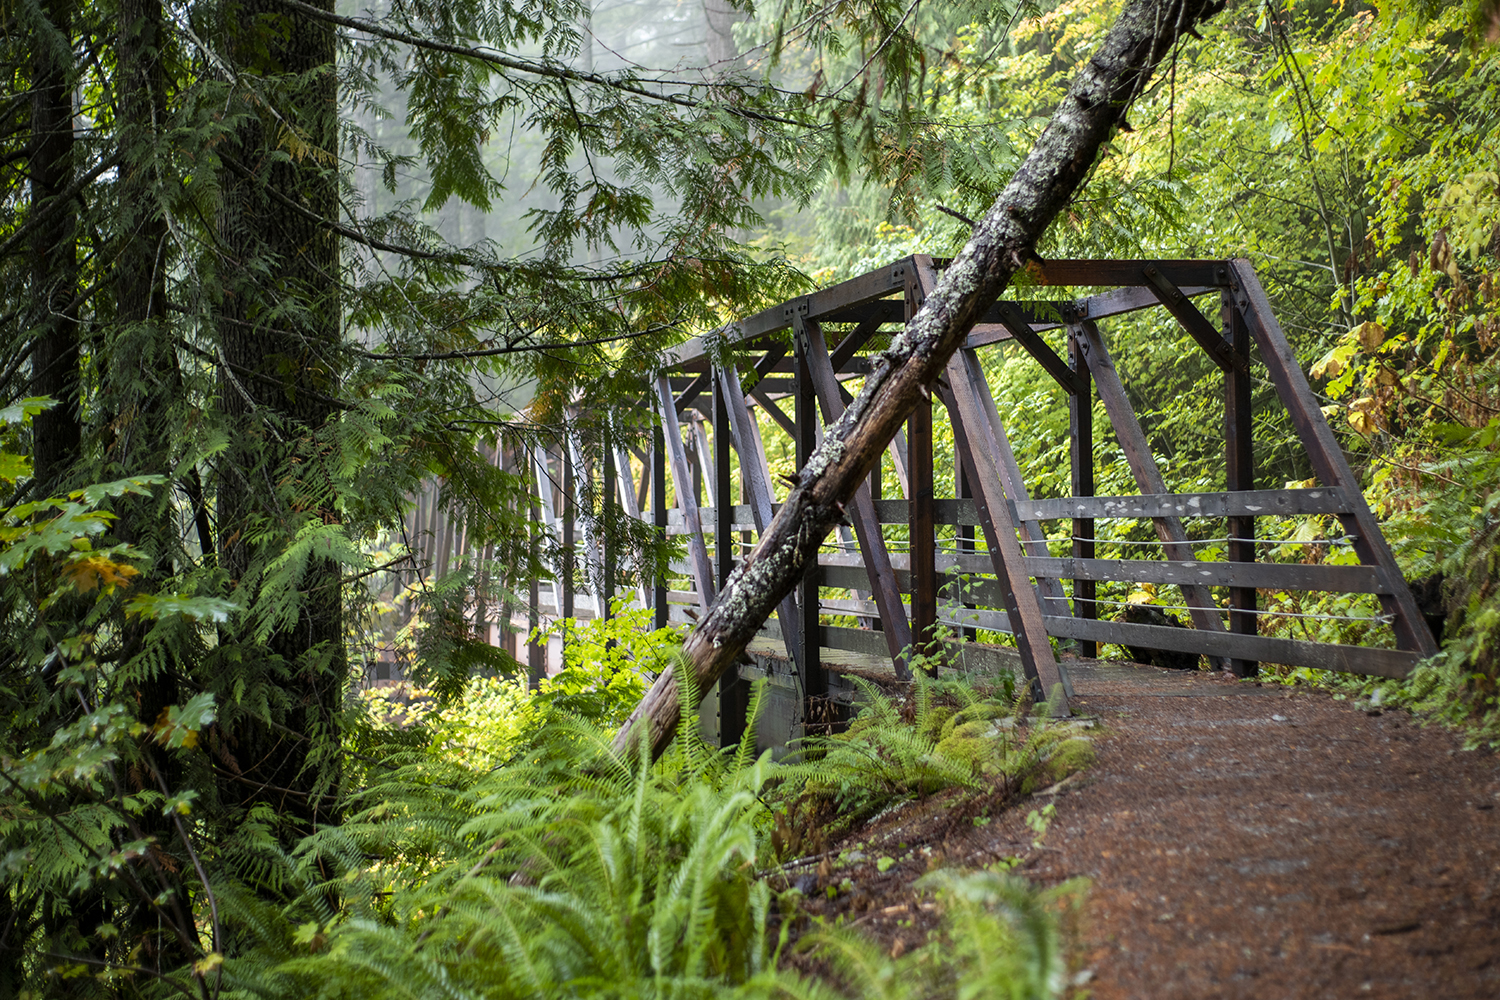 Built in 1893 to aide trains making their way through the Cascades, the Great Northern railroad grade was once considered the best engineered feat of all other transcontinental options. That same year, the railway extended operations to Seattle.{ }(Image: Rachael Jones / Seattle Refined)